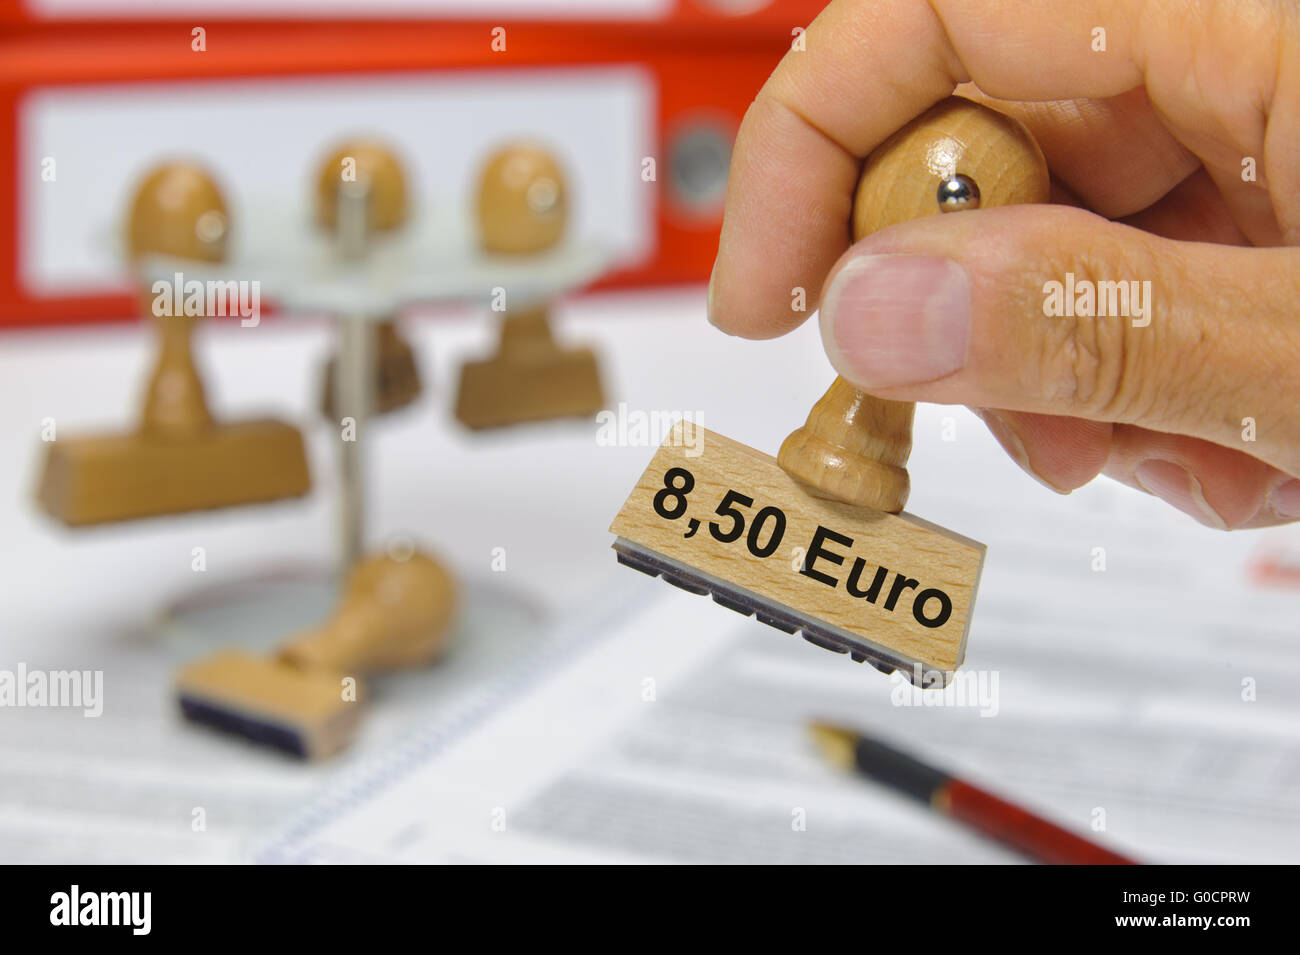 minimum wages in Germany Stock Photo